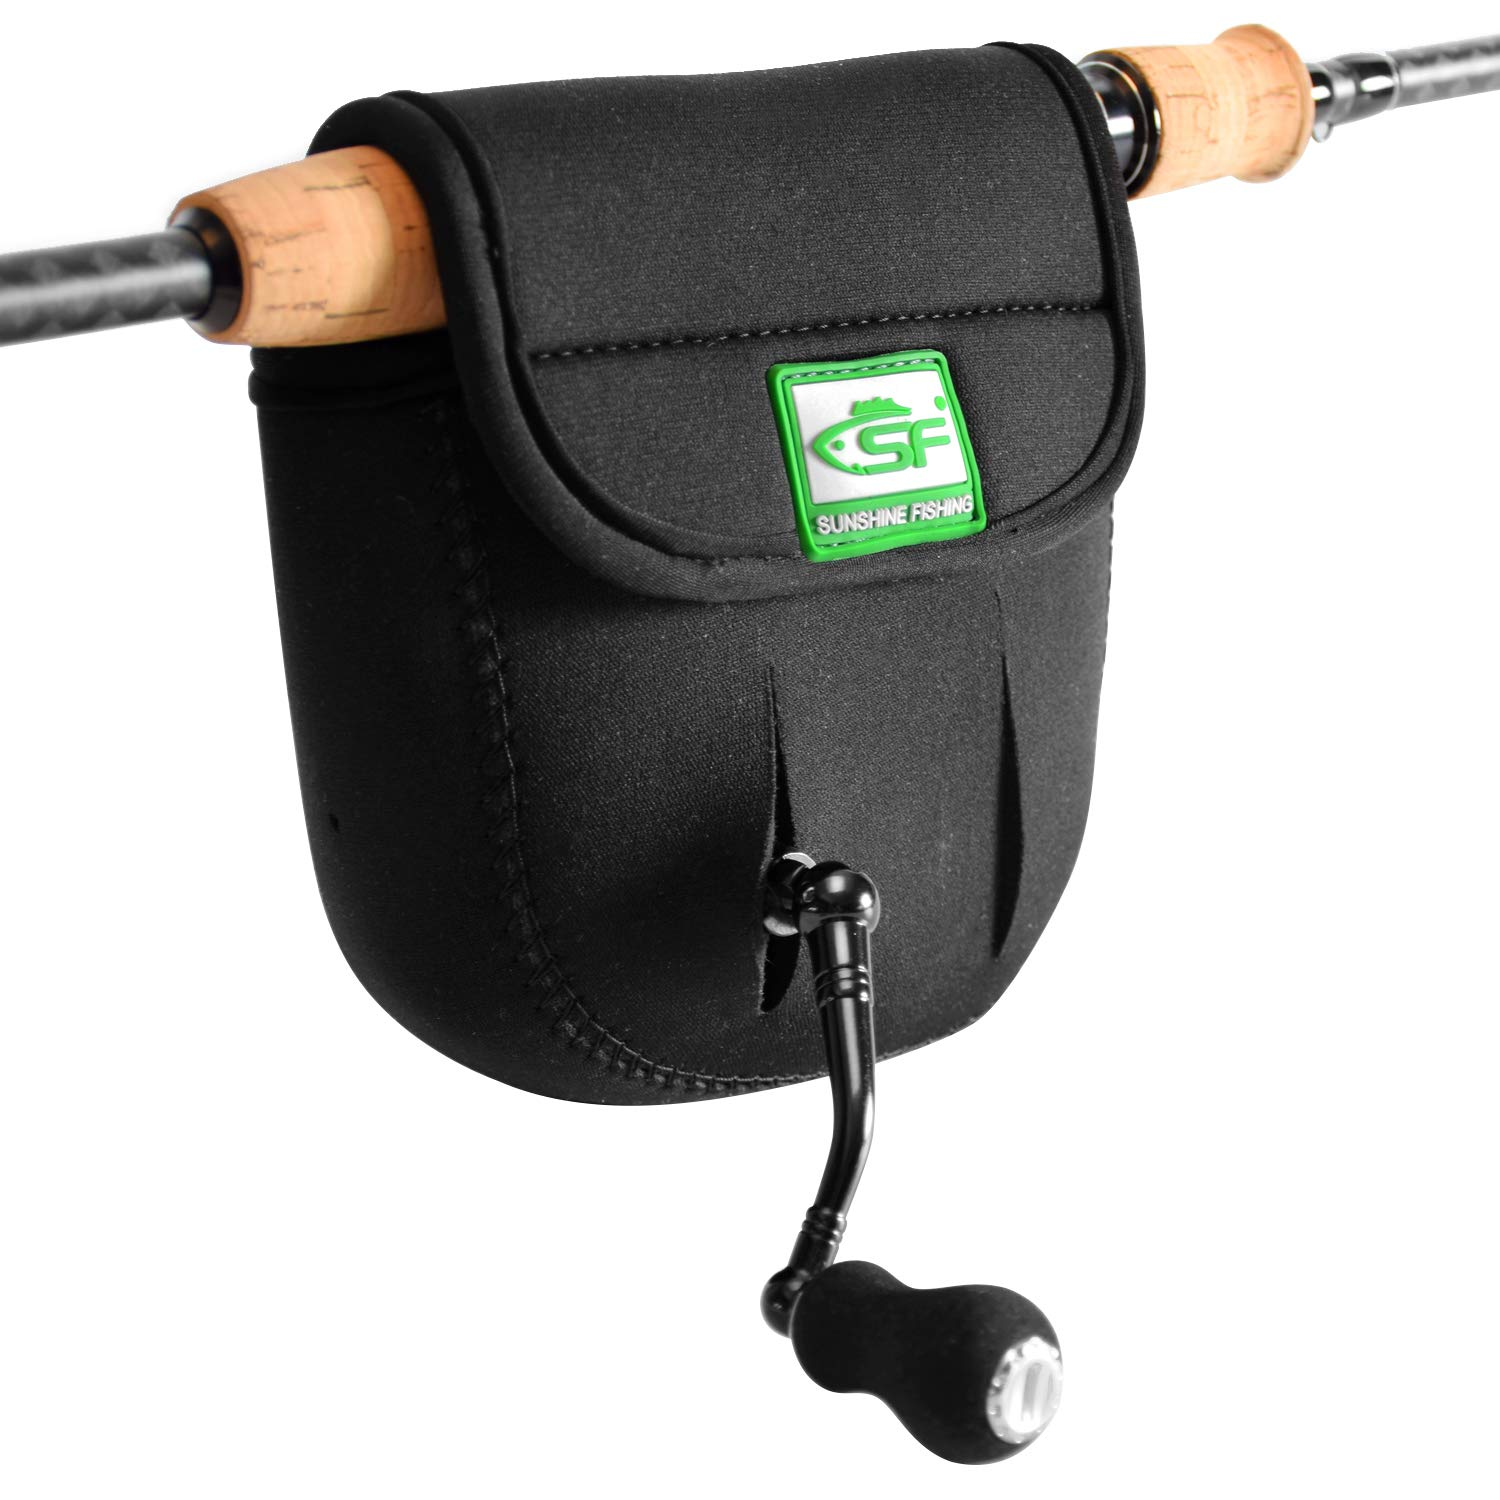 SF Spinning Reel Cover Case Bag Pouch Glove Fits 1000 2000 3000 4000 5000 6000 Series Spinning Reels